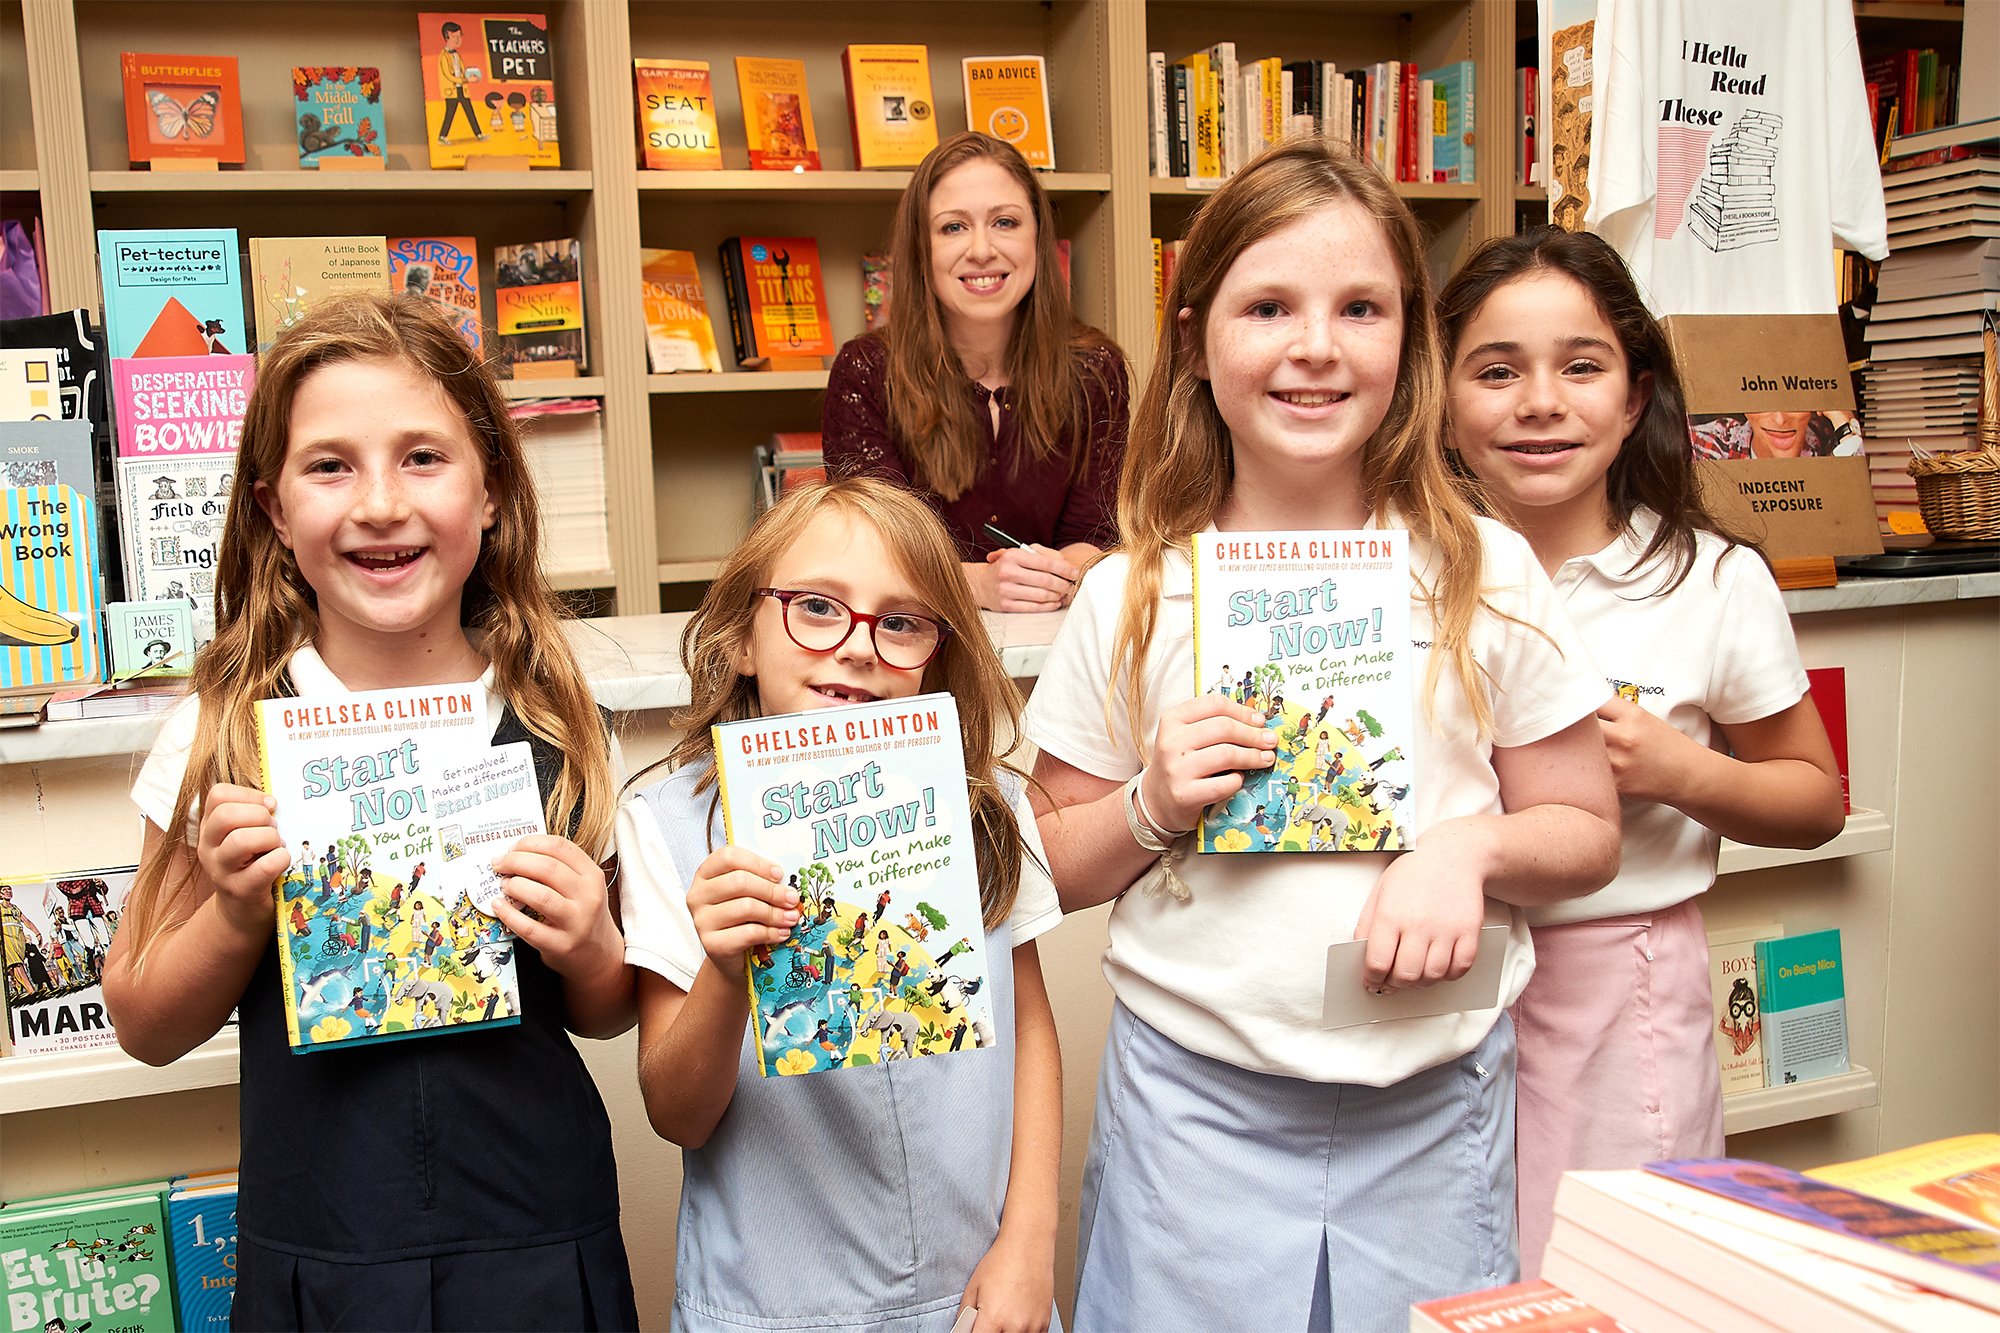 """Chelsea Clinton Signs And Discusses Her New Children's Book """"Start Now!  You Can Make A Difference"""""""